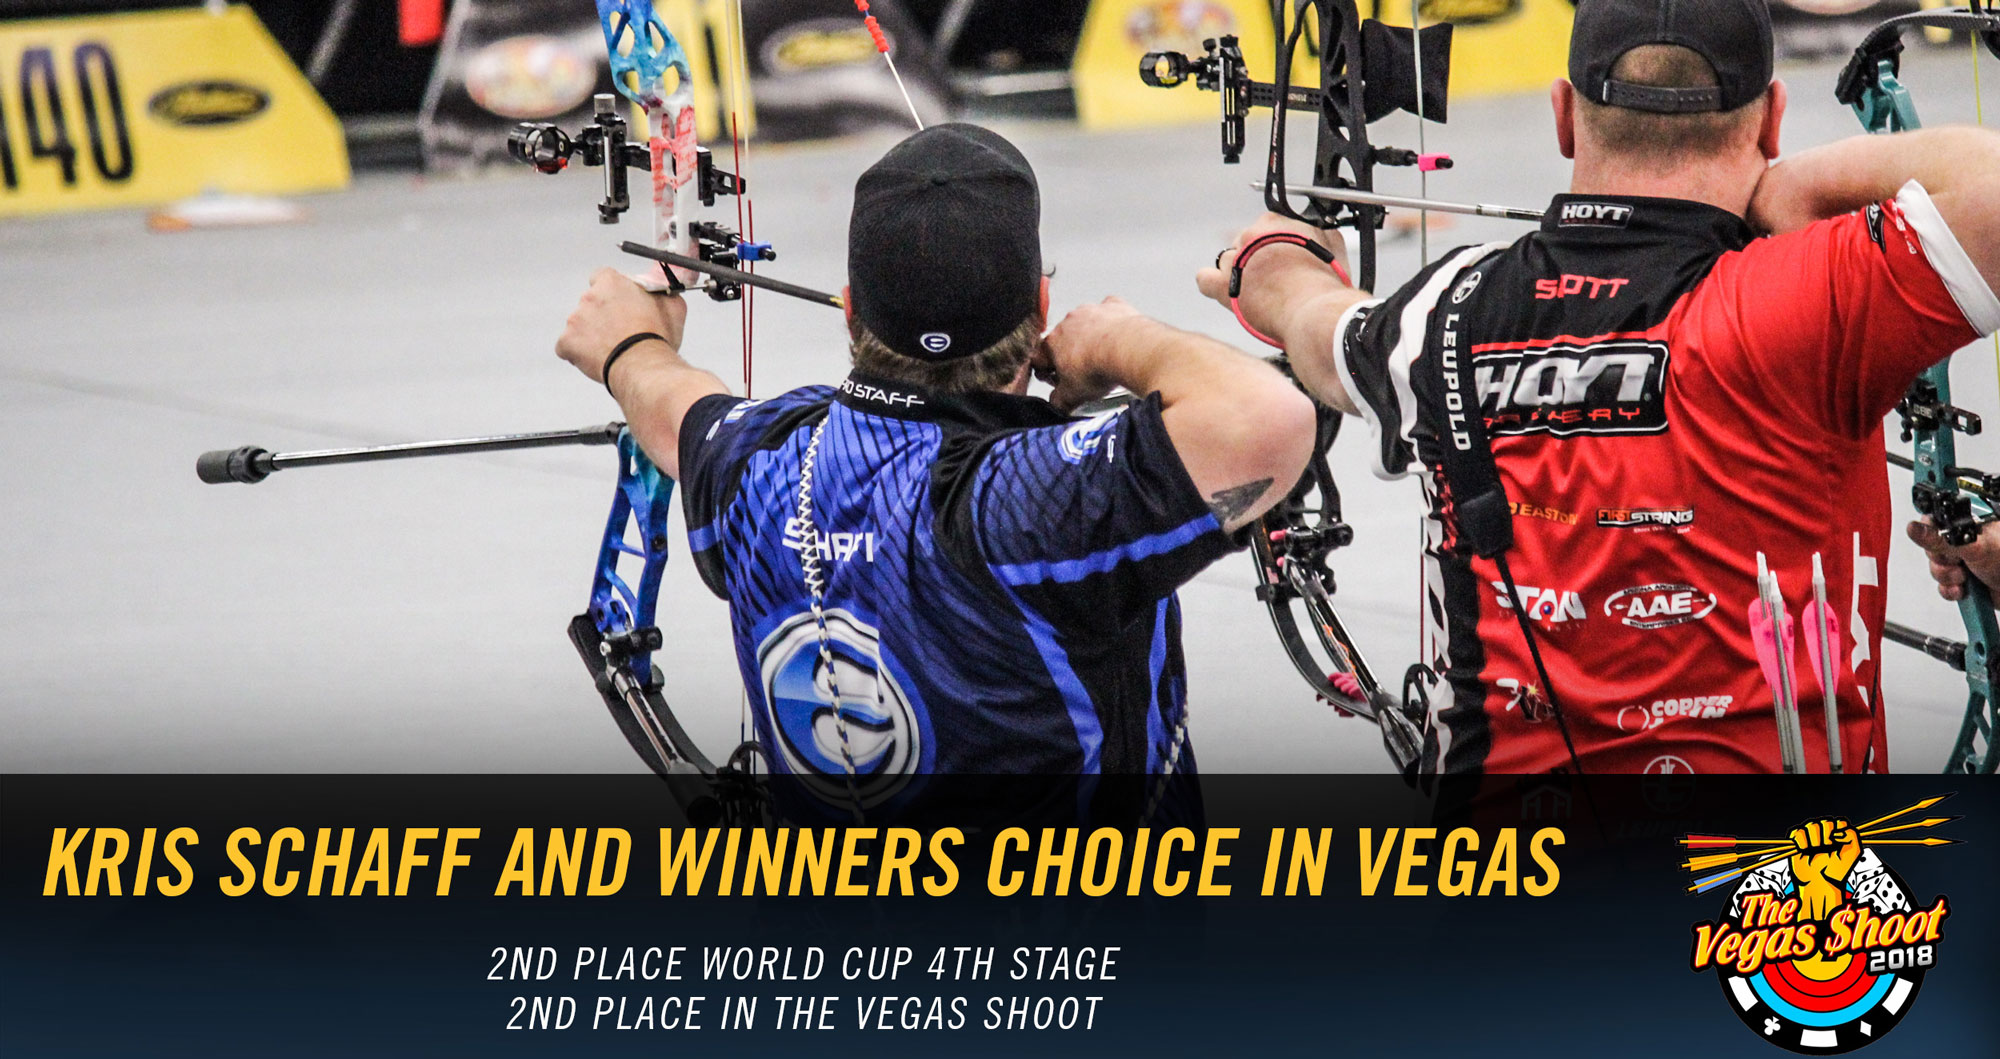 Kris Schaff uses Winners Choice Bowstrings - World Cup and Vegas Shoot